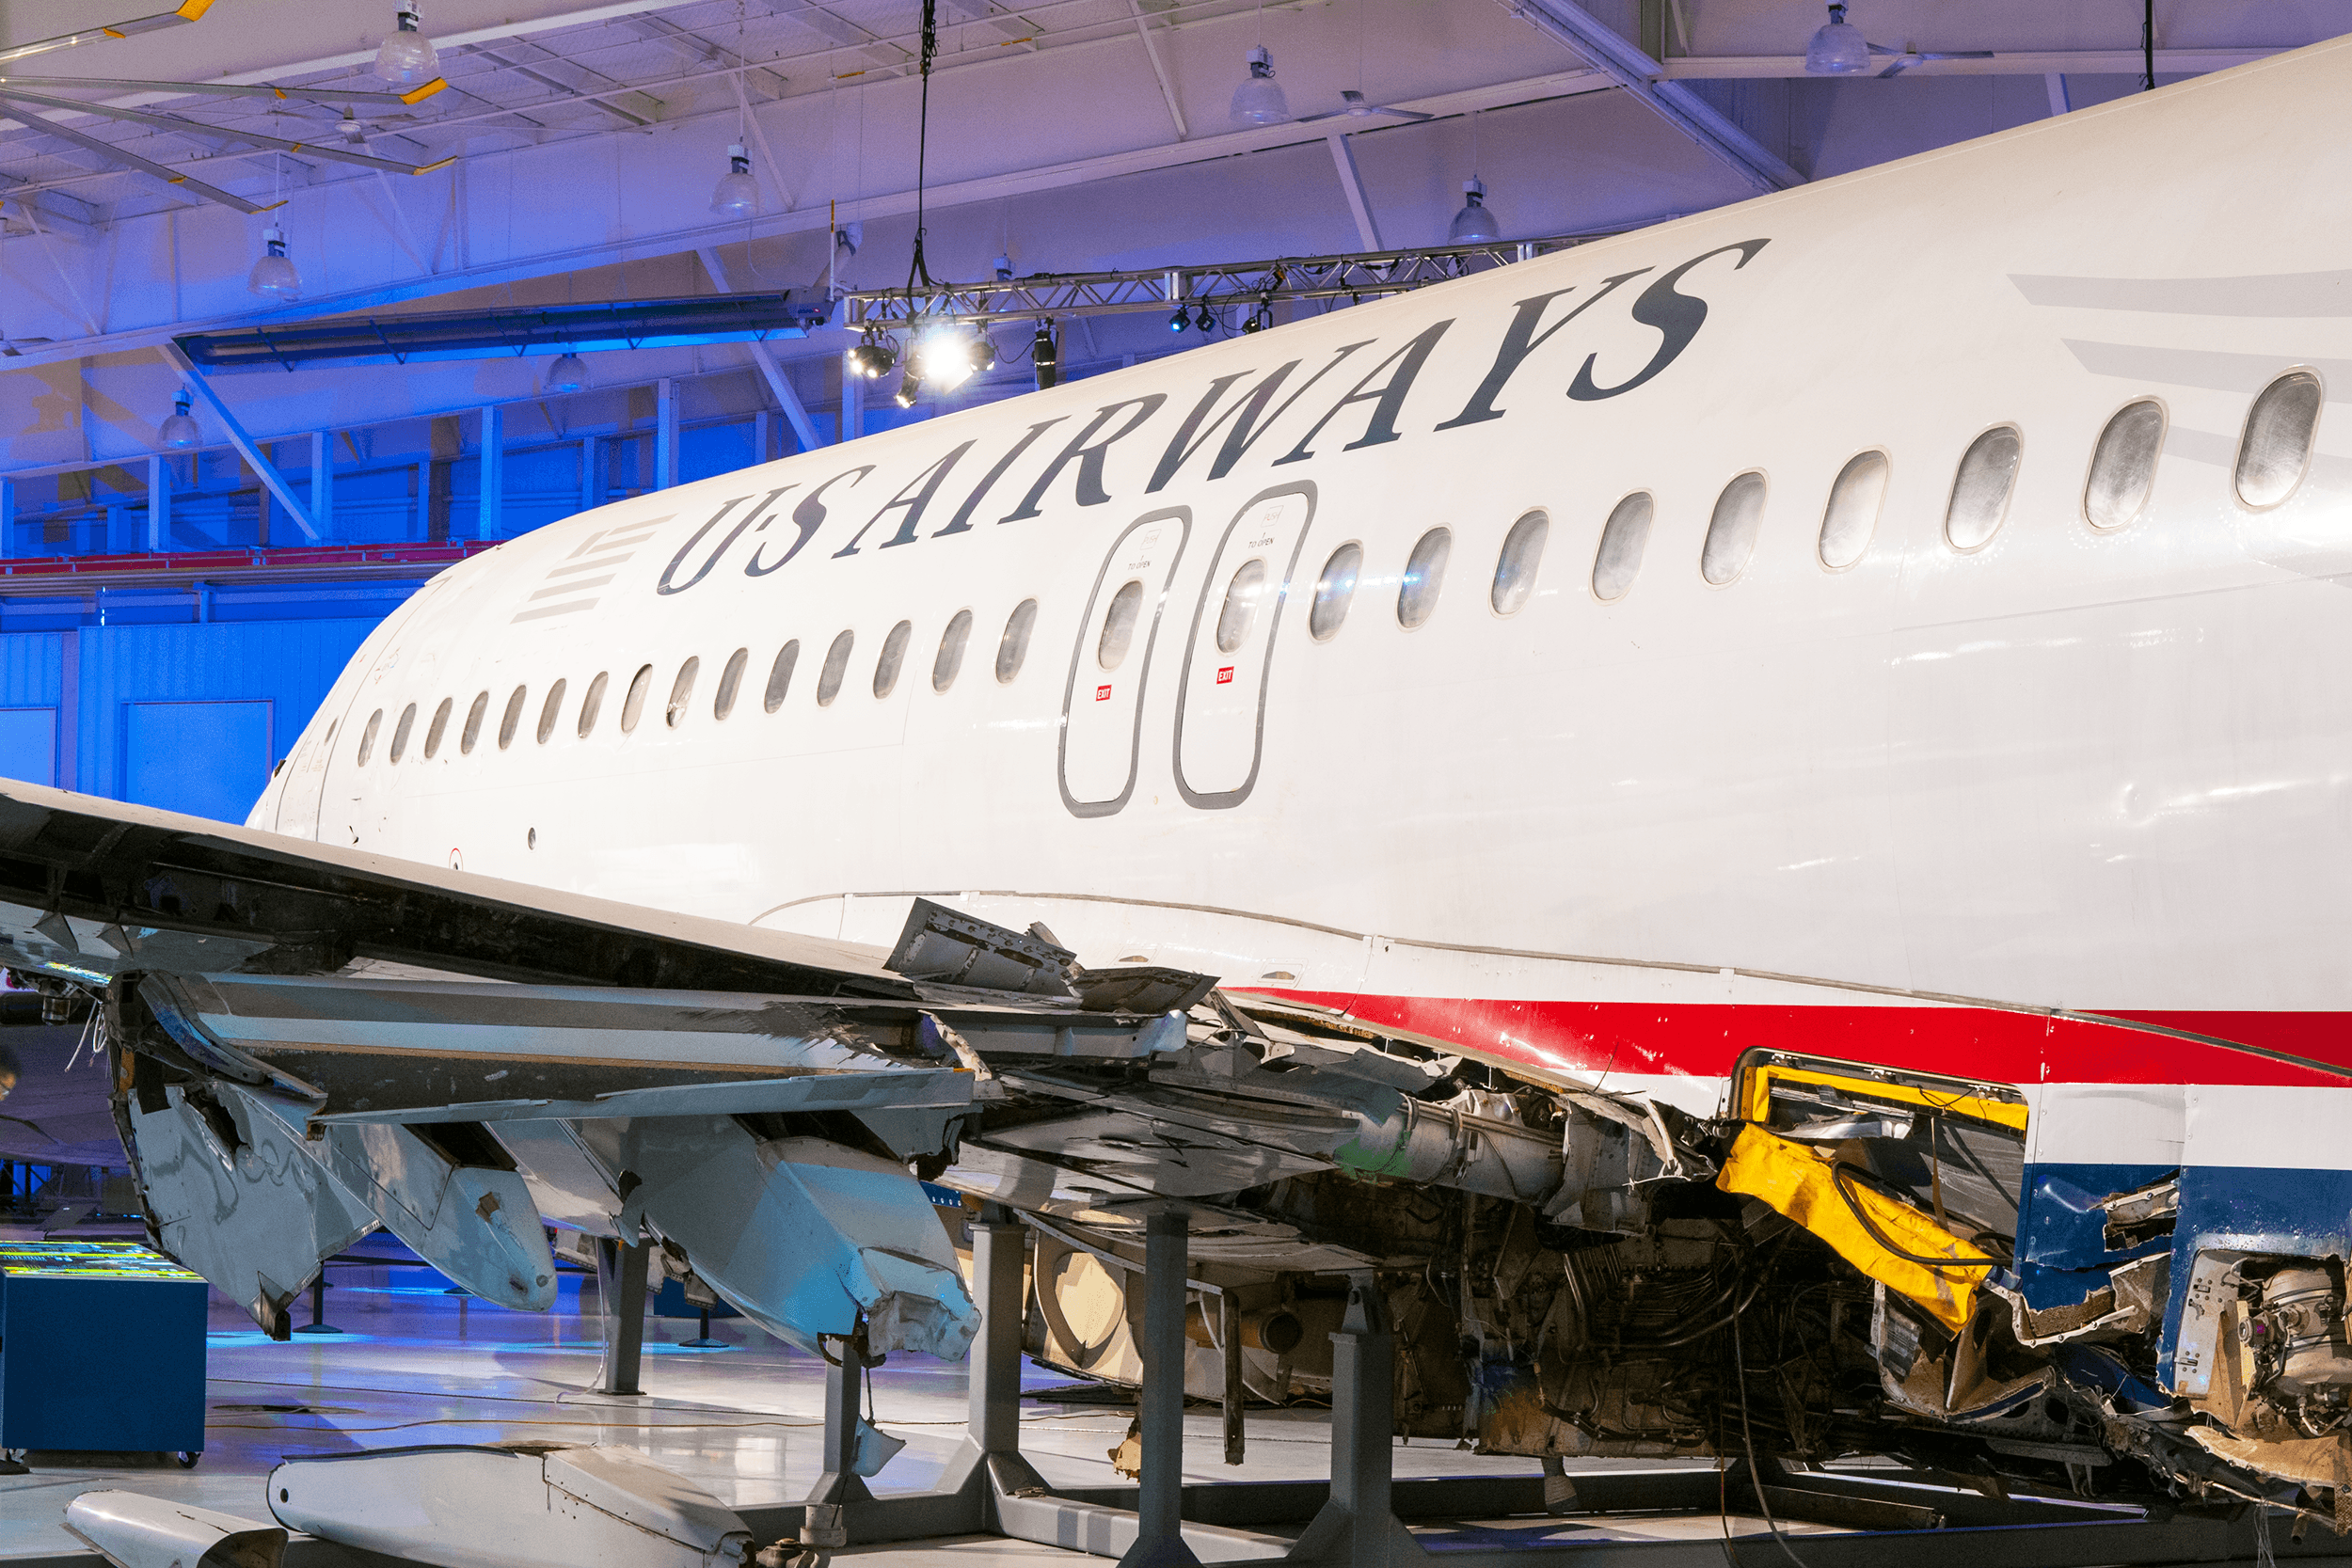 Home of the iconic US-Airways flight 1549 which did a successful emergency landing in the Hudson River in New York City in January of 2009 after hitting a flock of Canada geese causing both engines to fail.